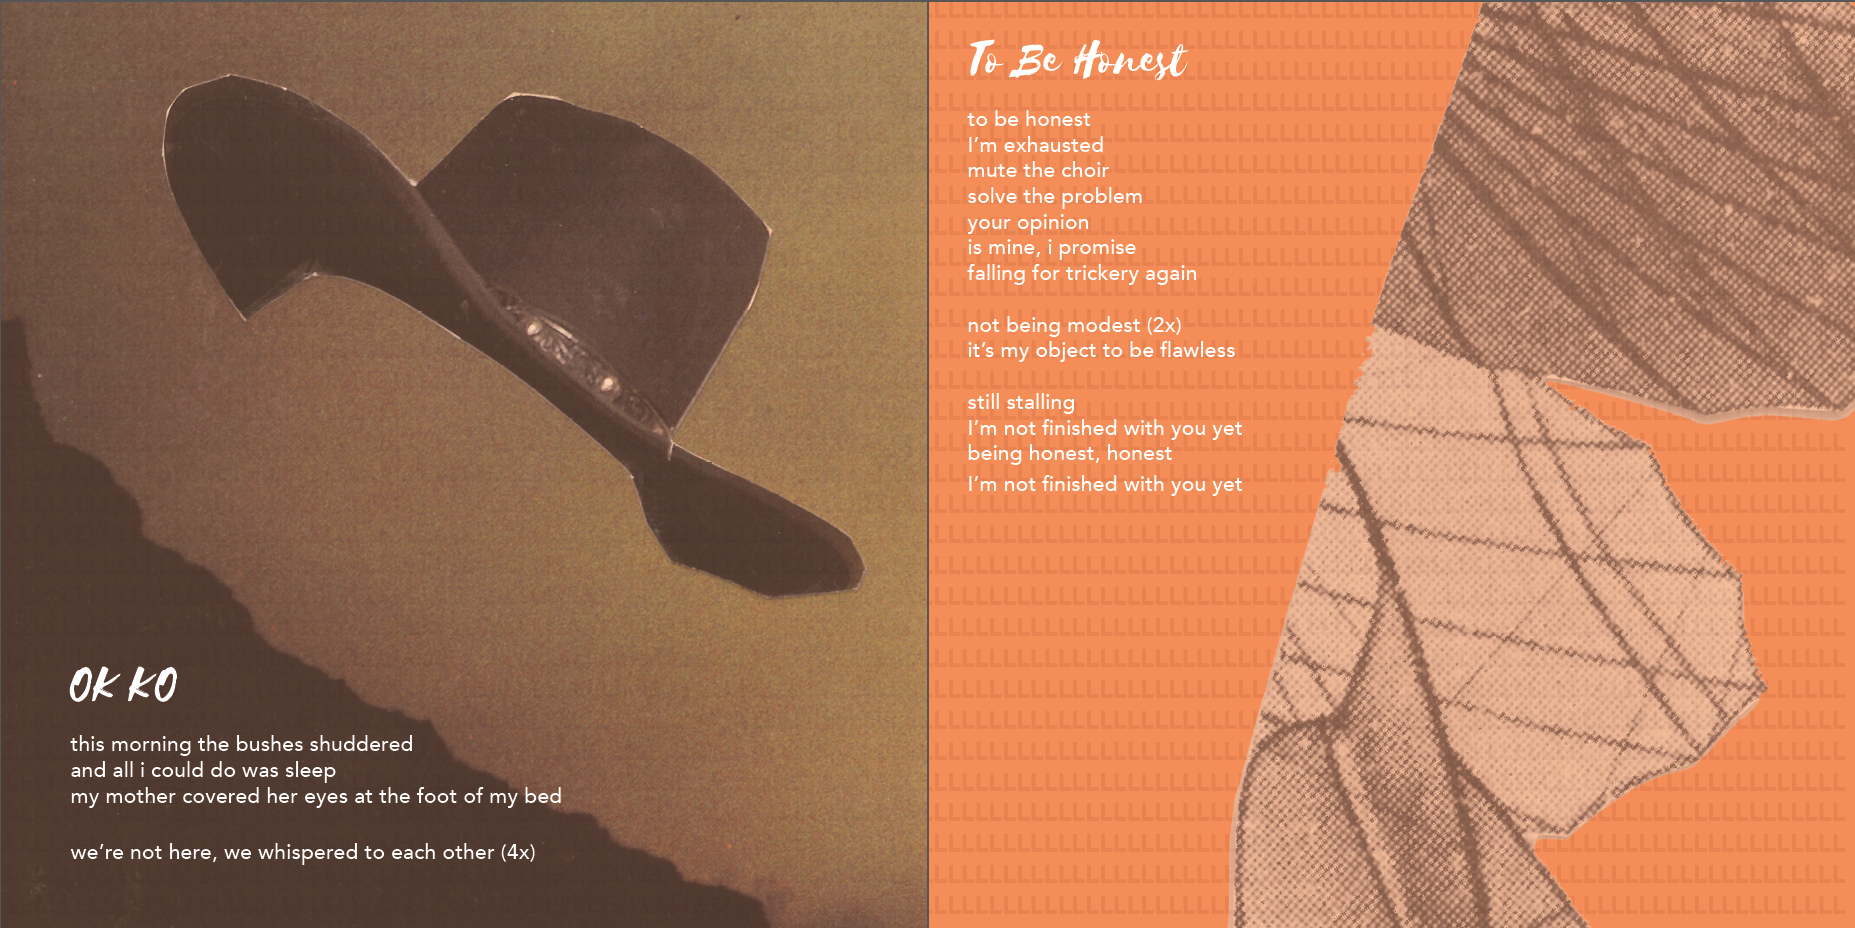 Two page spread for Lalalangue album